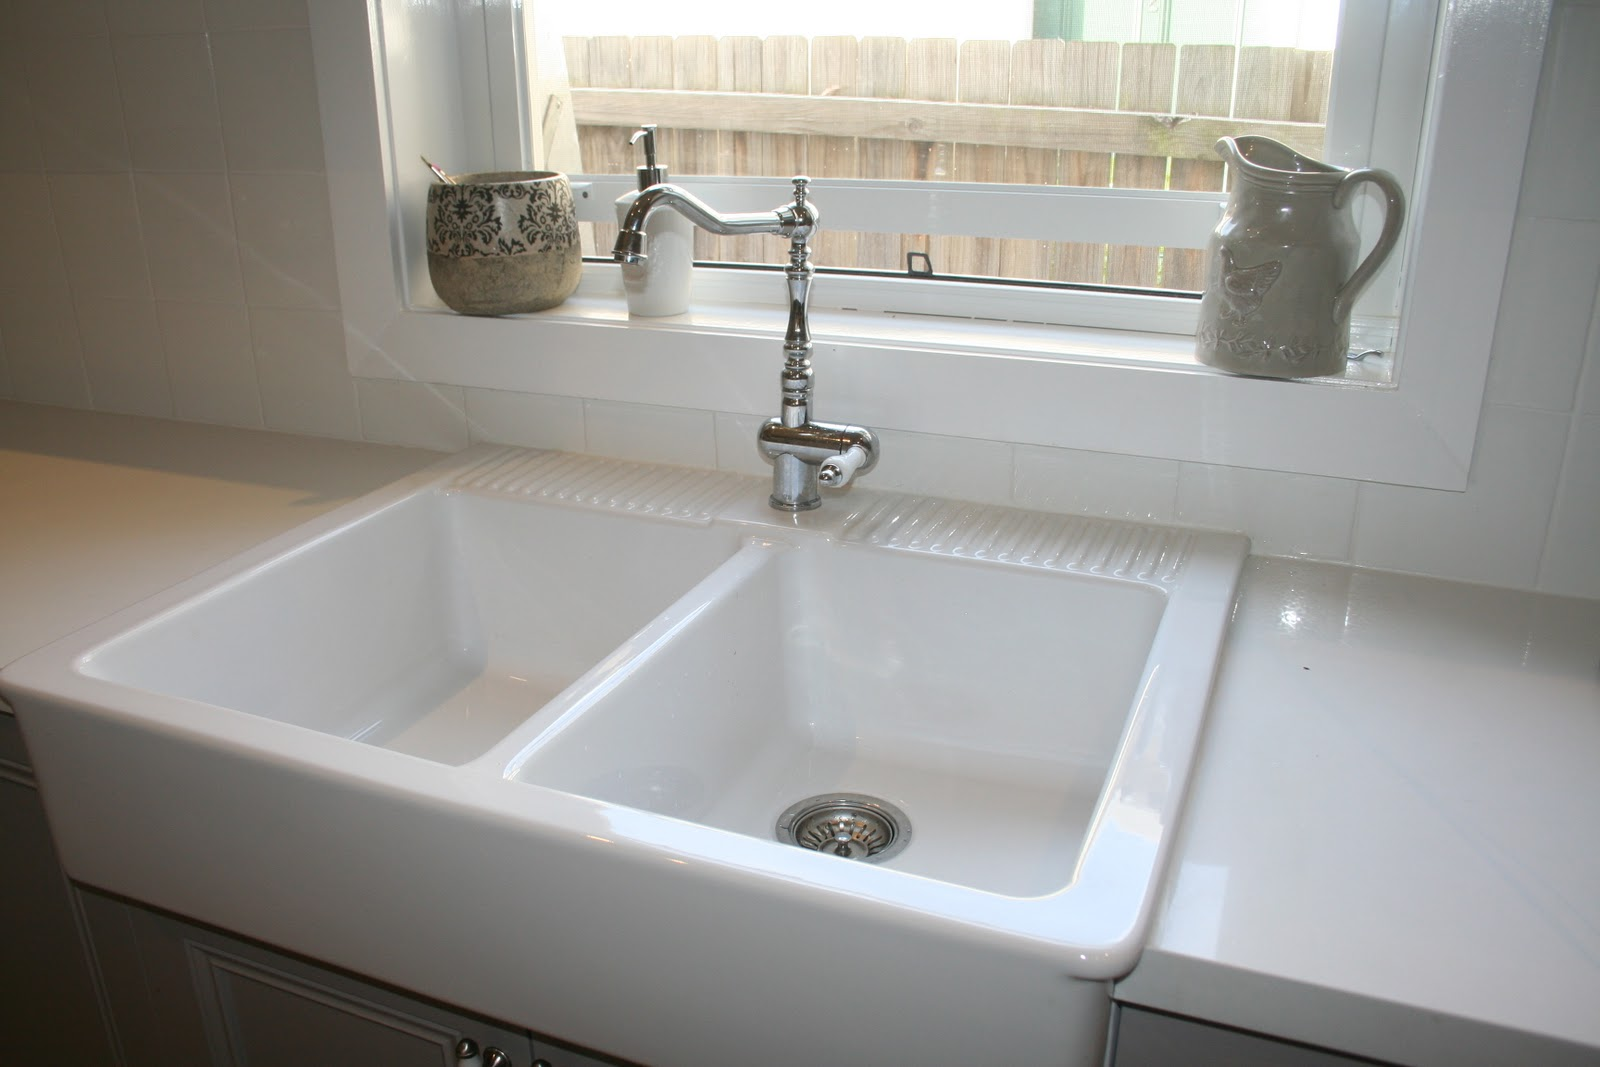 double farm sinks with single faucet in pure white kitchen countertop a window garden with two ceramic ornaments